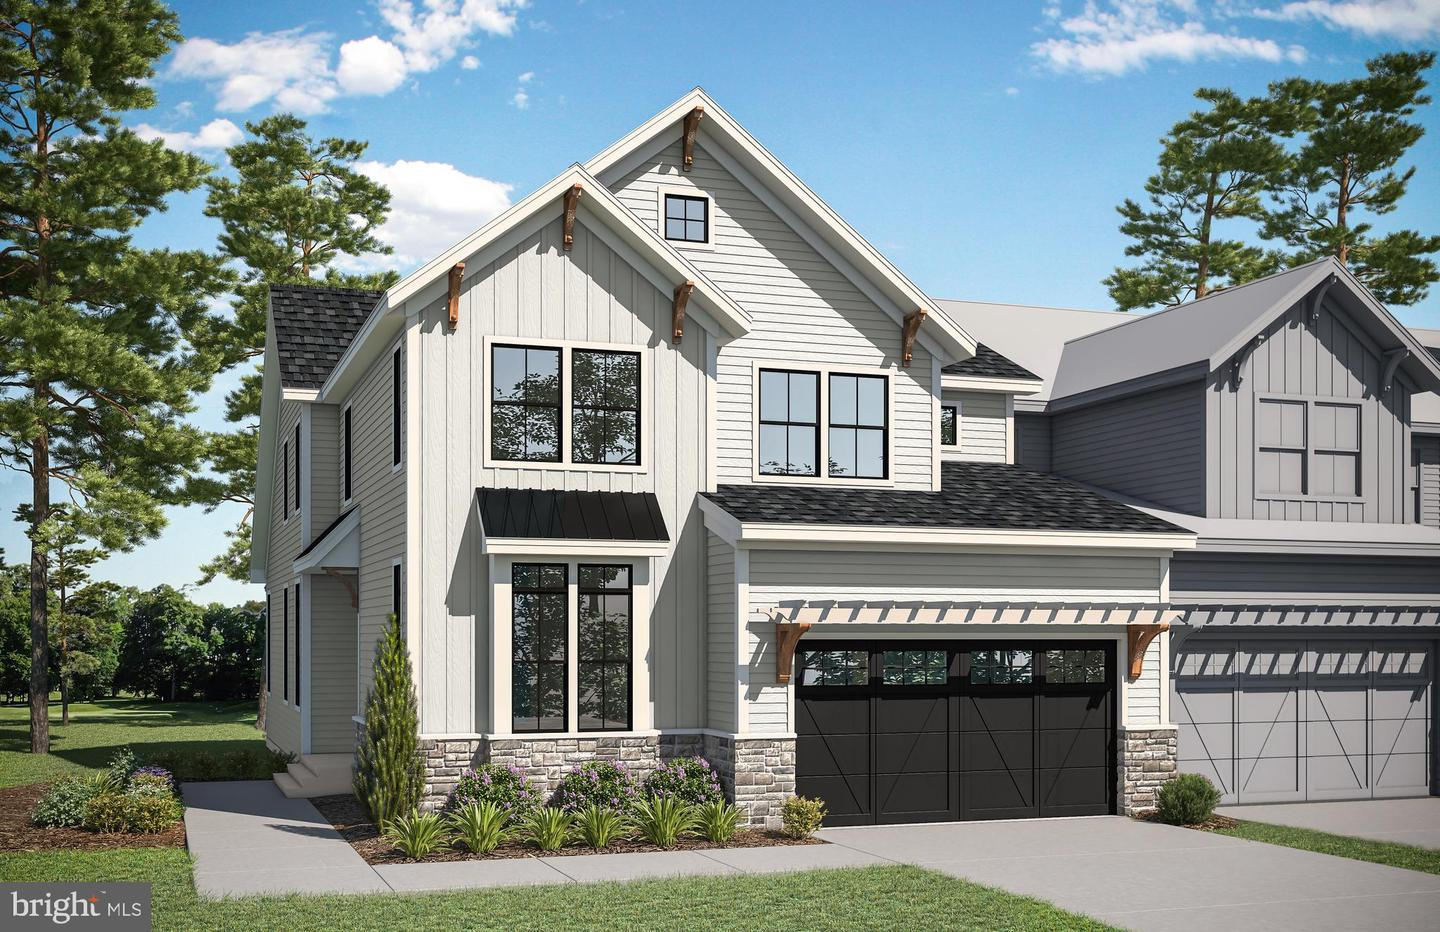 531 Sill Overlook - Lot 89 Newtown Square, PA 19073